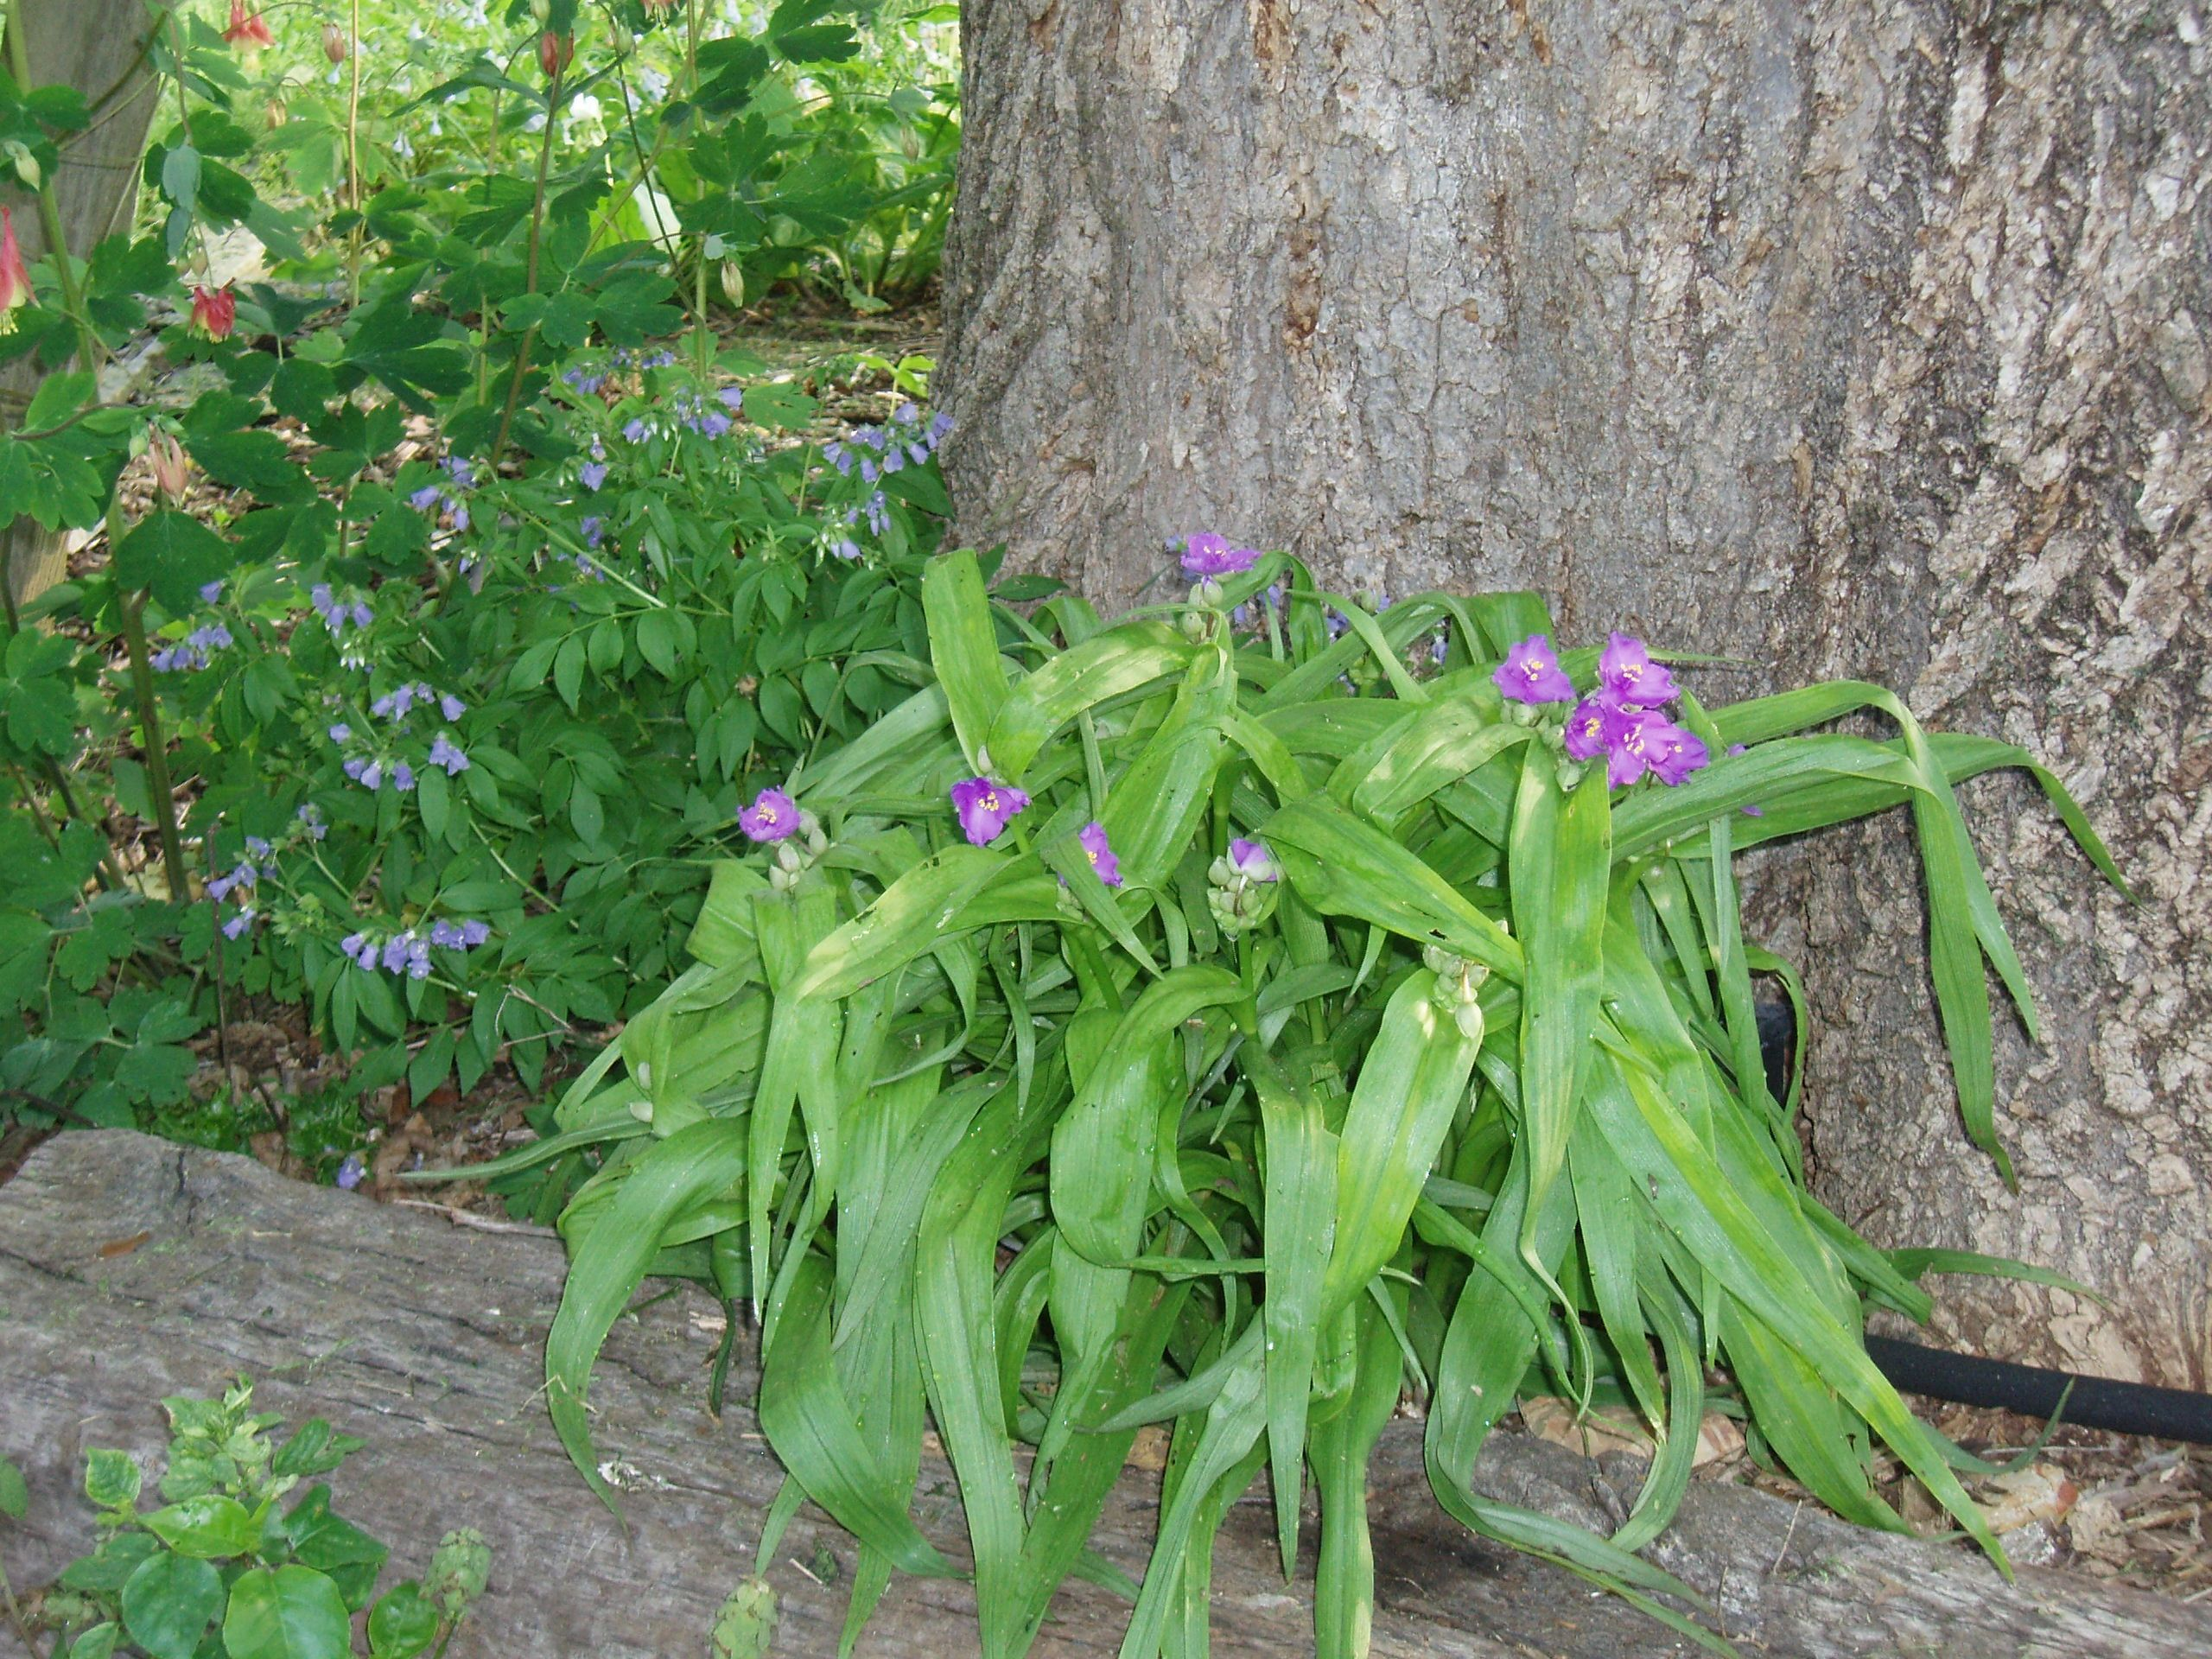 "{""blocks"":[{""key"":""e51q4"",""text"":"" Tradescantia ernestina Ernest's Woodland Spiderwort - potted plants email john@easywildflowers.com"",""type"":""unstyled"",""depth"":0,""inlineStyleRanges"":[],""entityRanges"":[],""data"":{}}],""entityMap"":{}}"